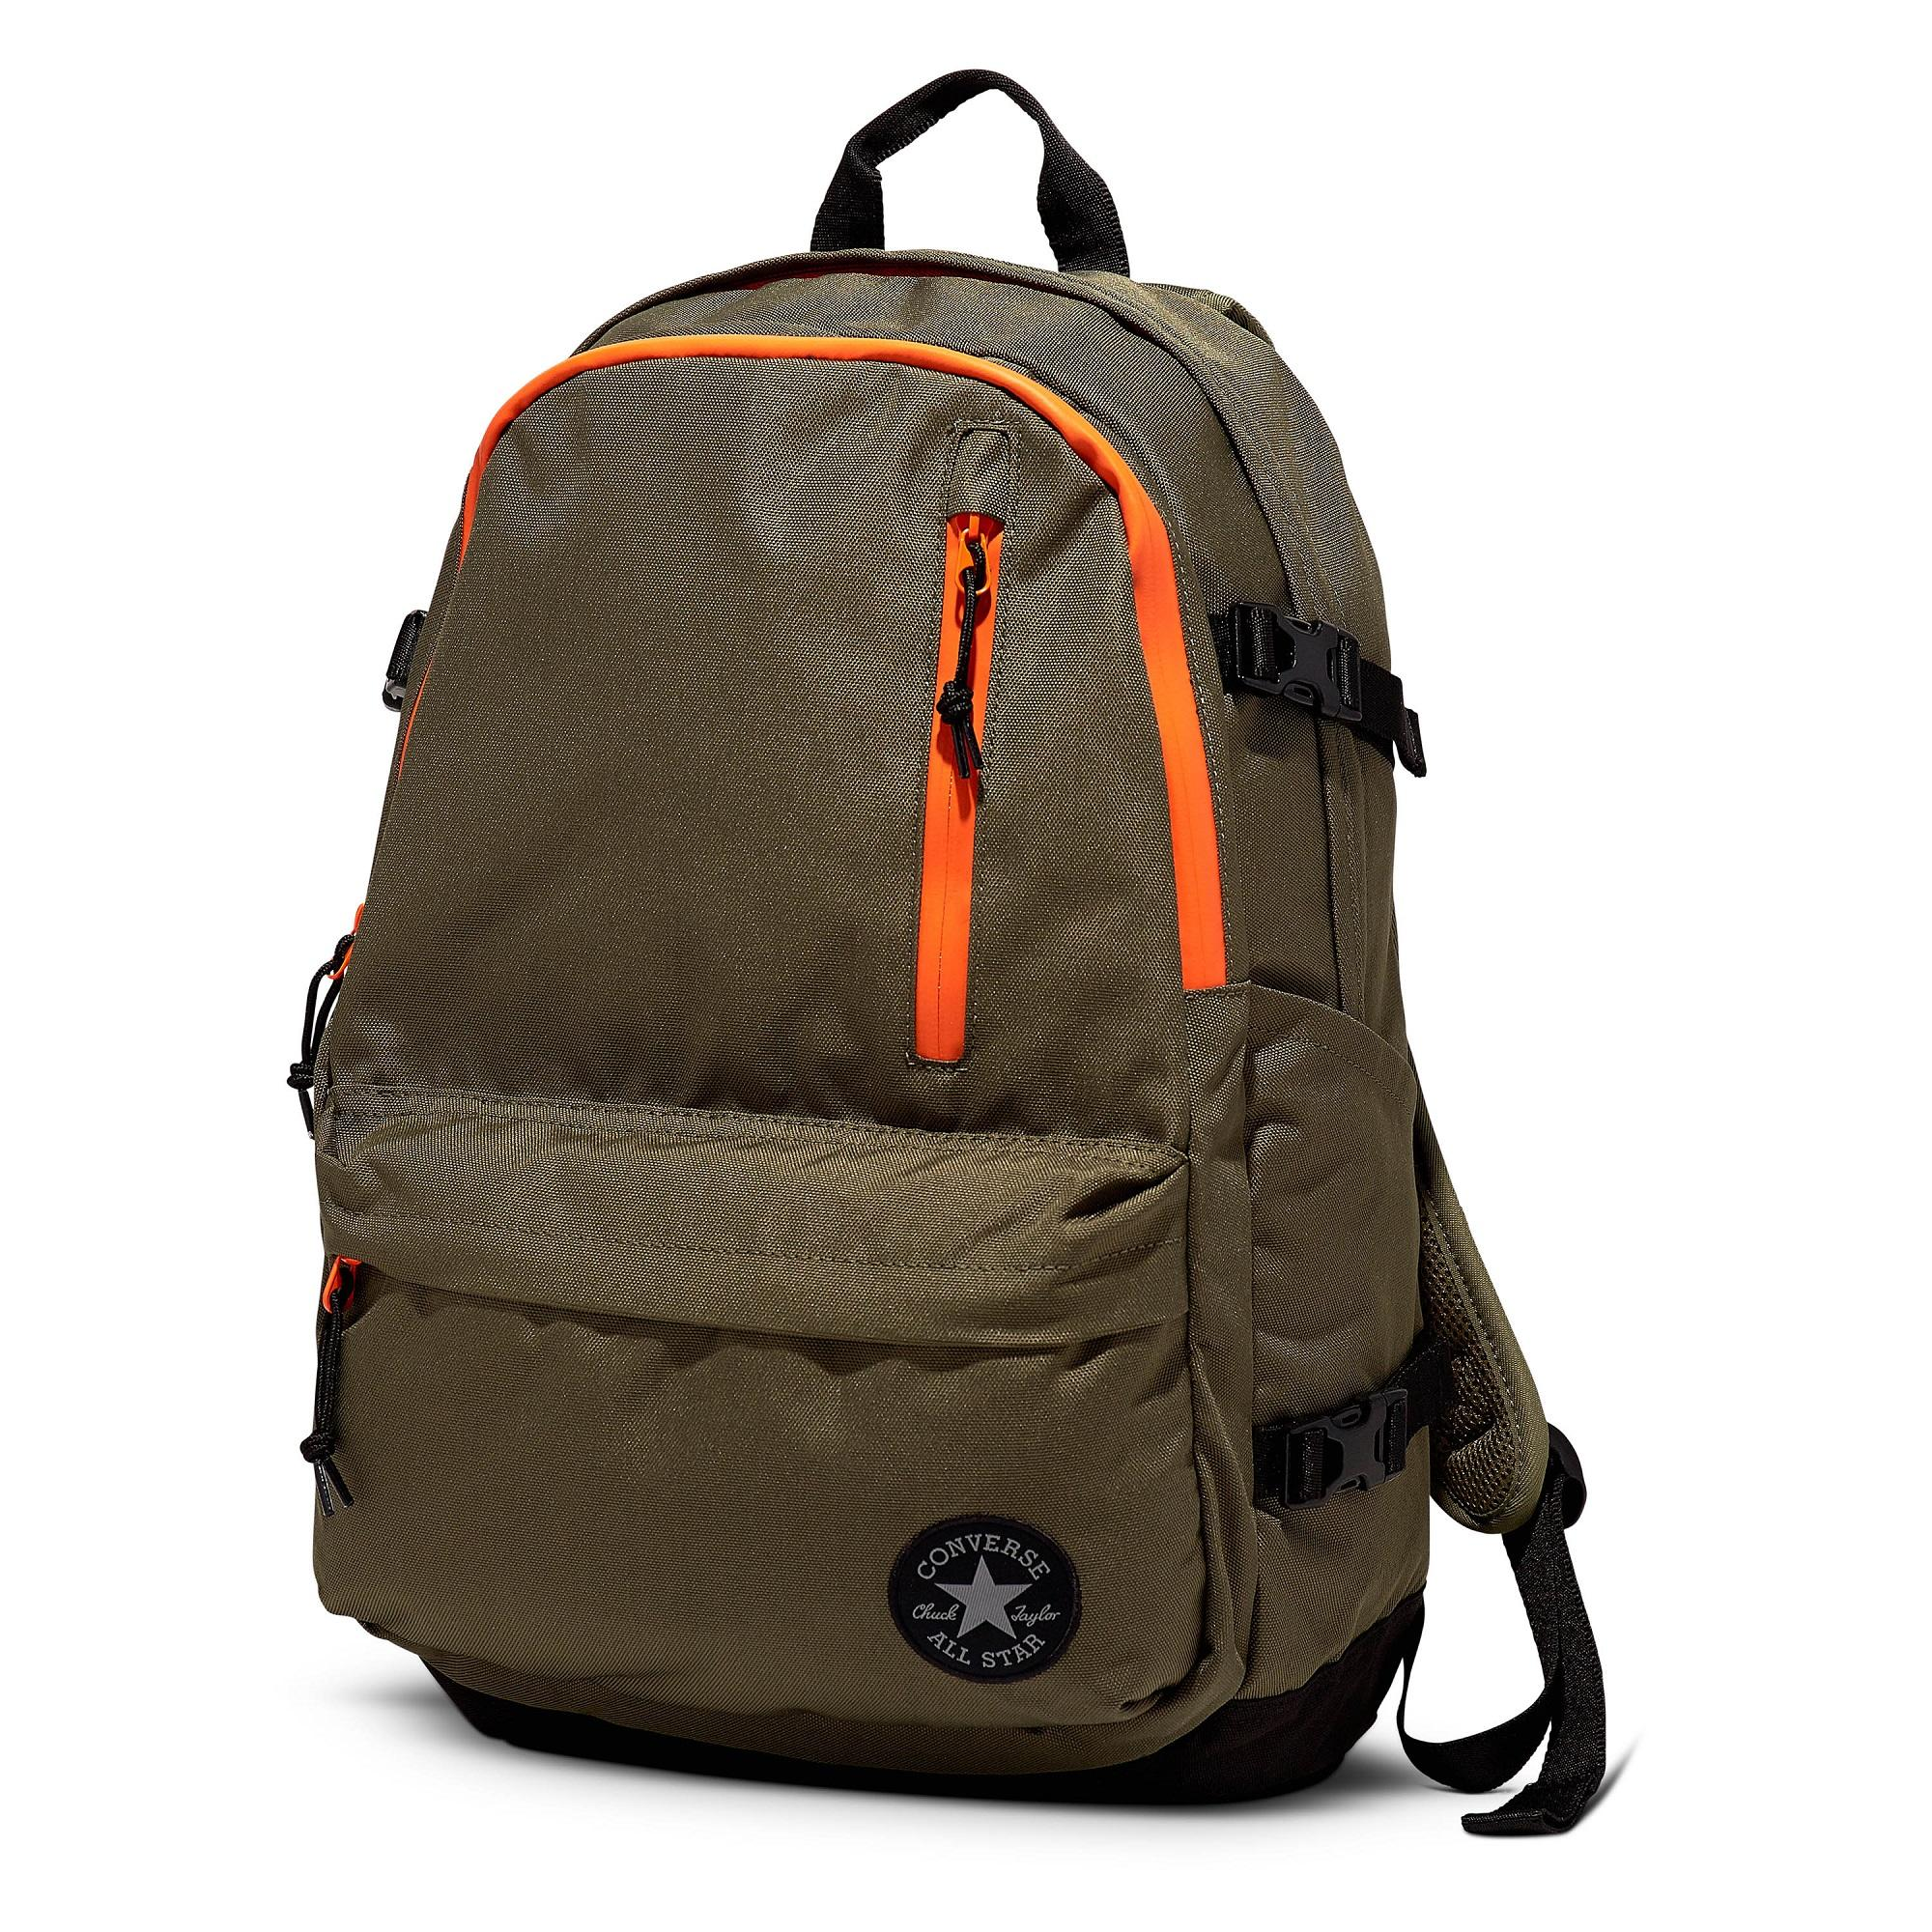 1406e628680e CONVERSE STRAIGHT EDGE BACKPACK - FIELD SURPLUS BOLD MANDARIN BL - 954838 -  10007784